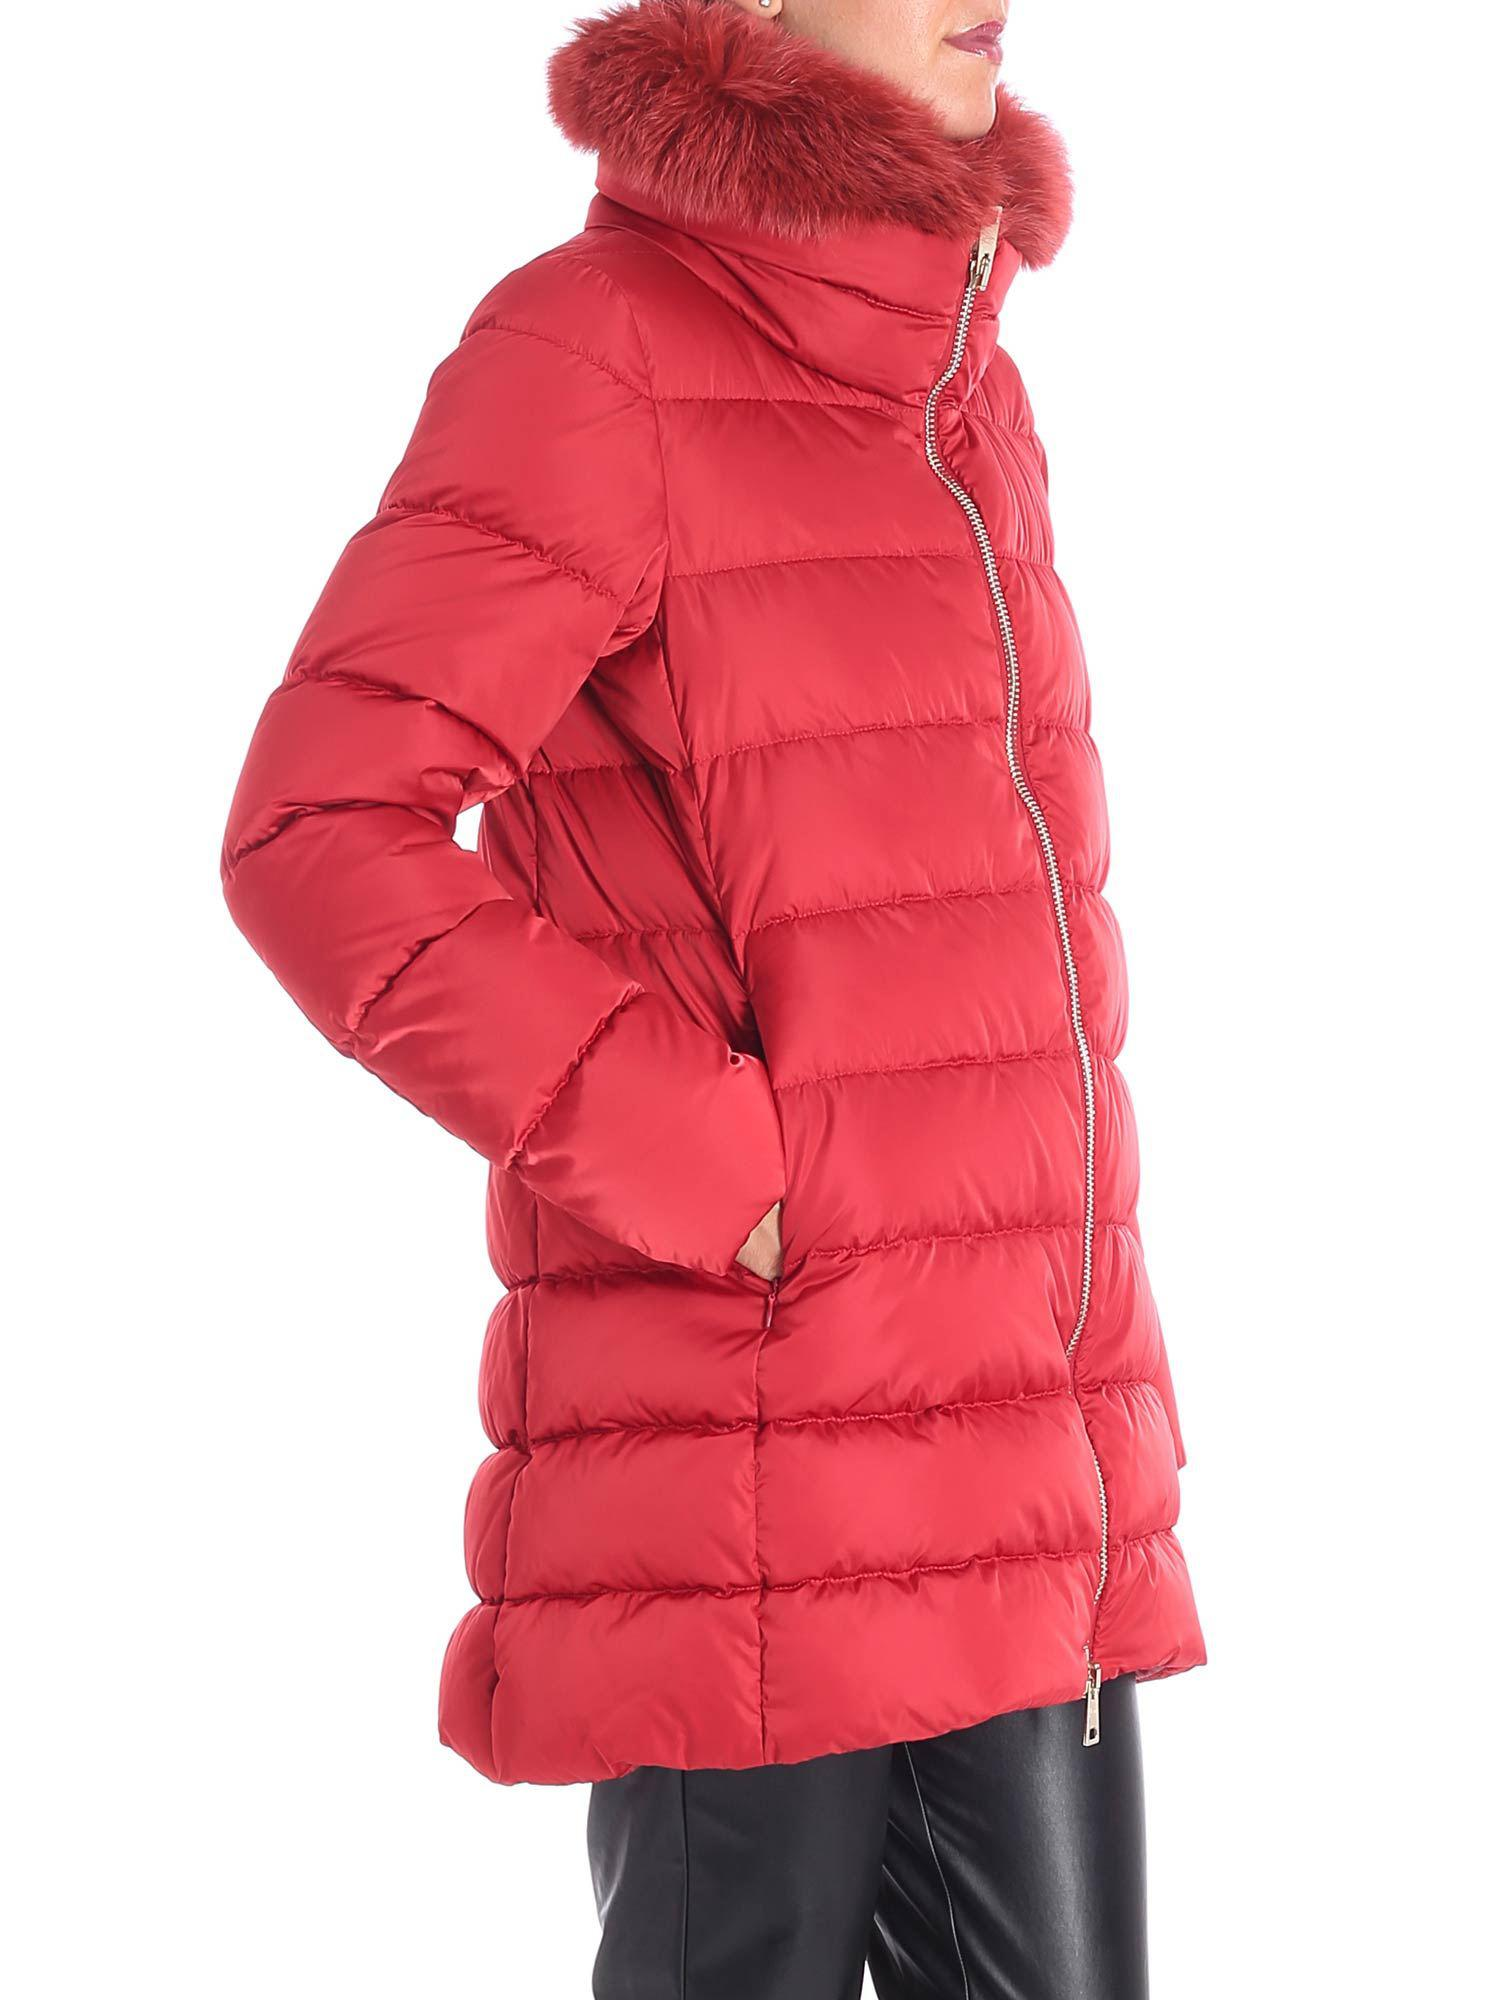 96d697c8f97f Herno Red Polar Tech Down Jacket With Removable Insert in Red - Lyst